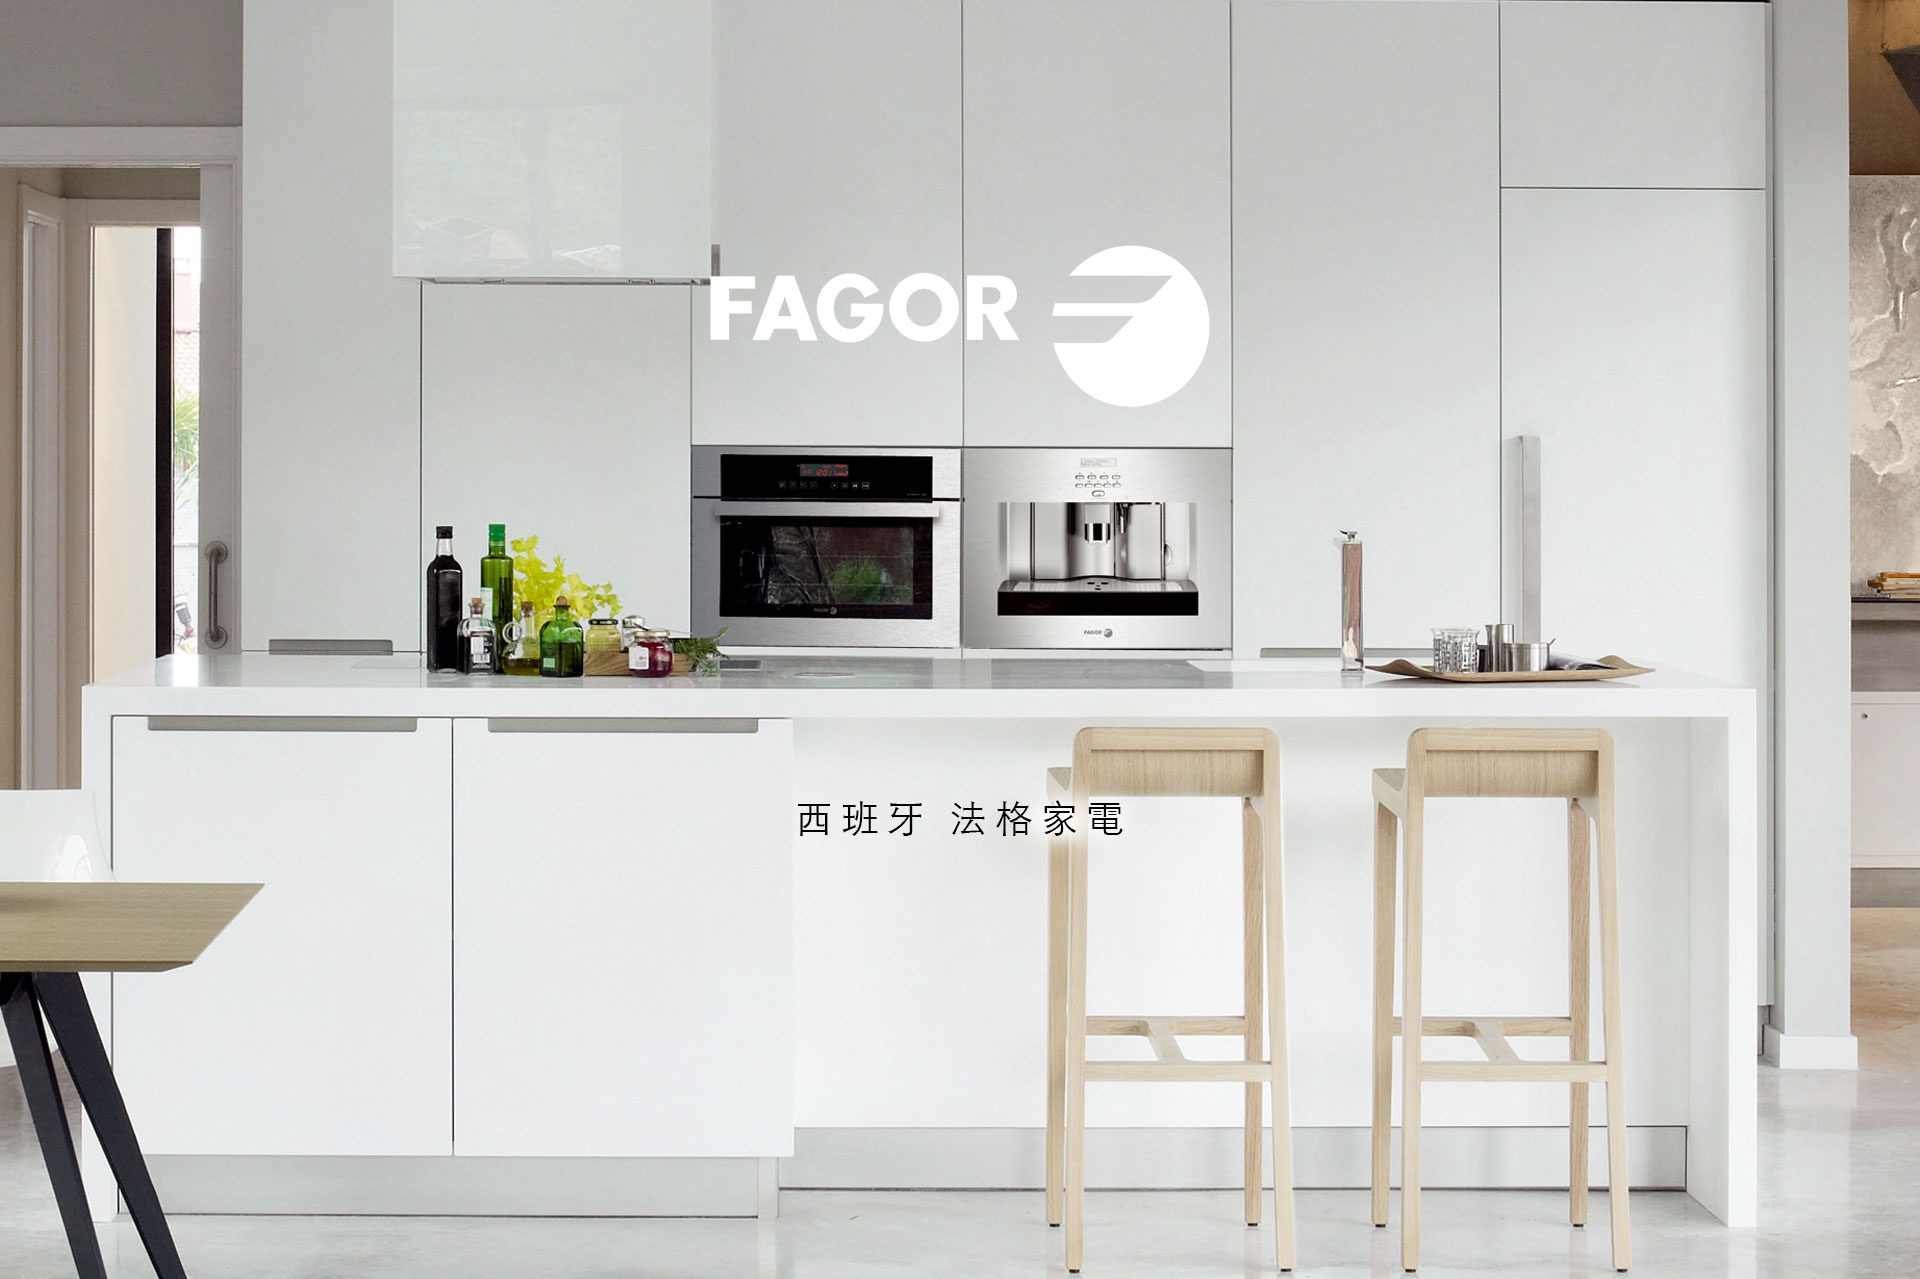 Beautiful Kitchen with Fagor Appliances